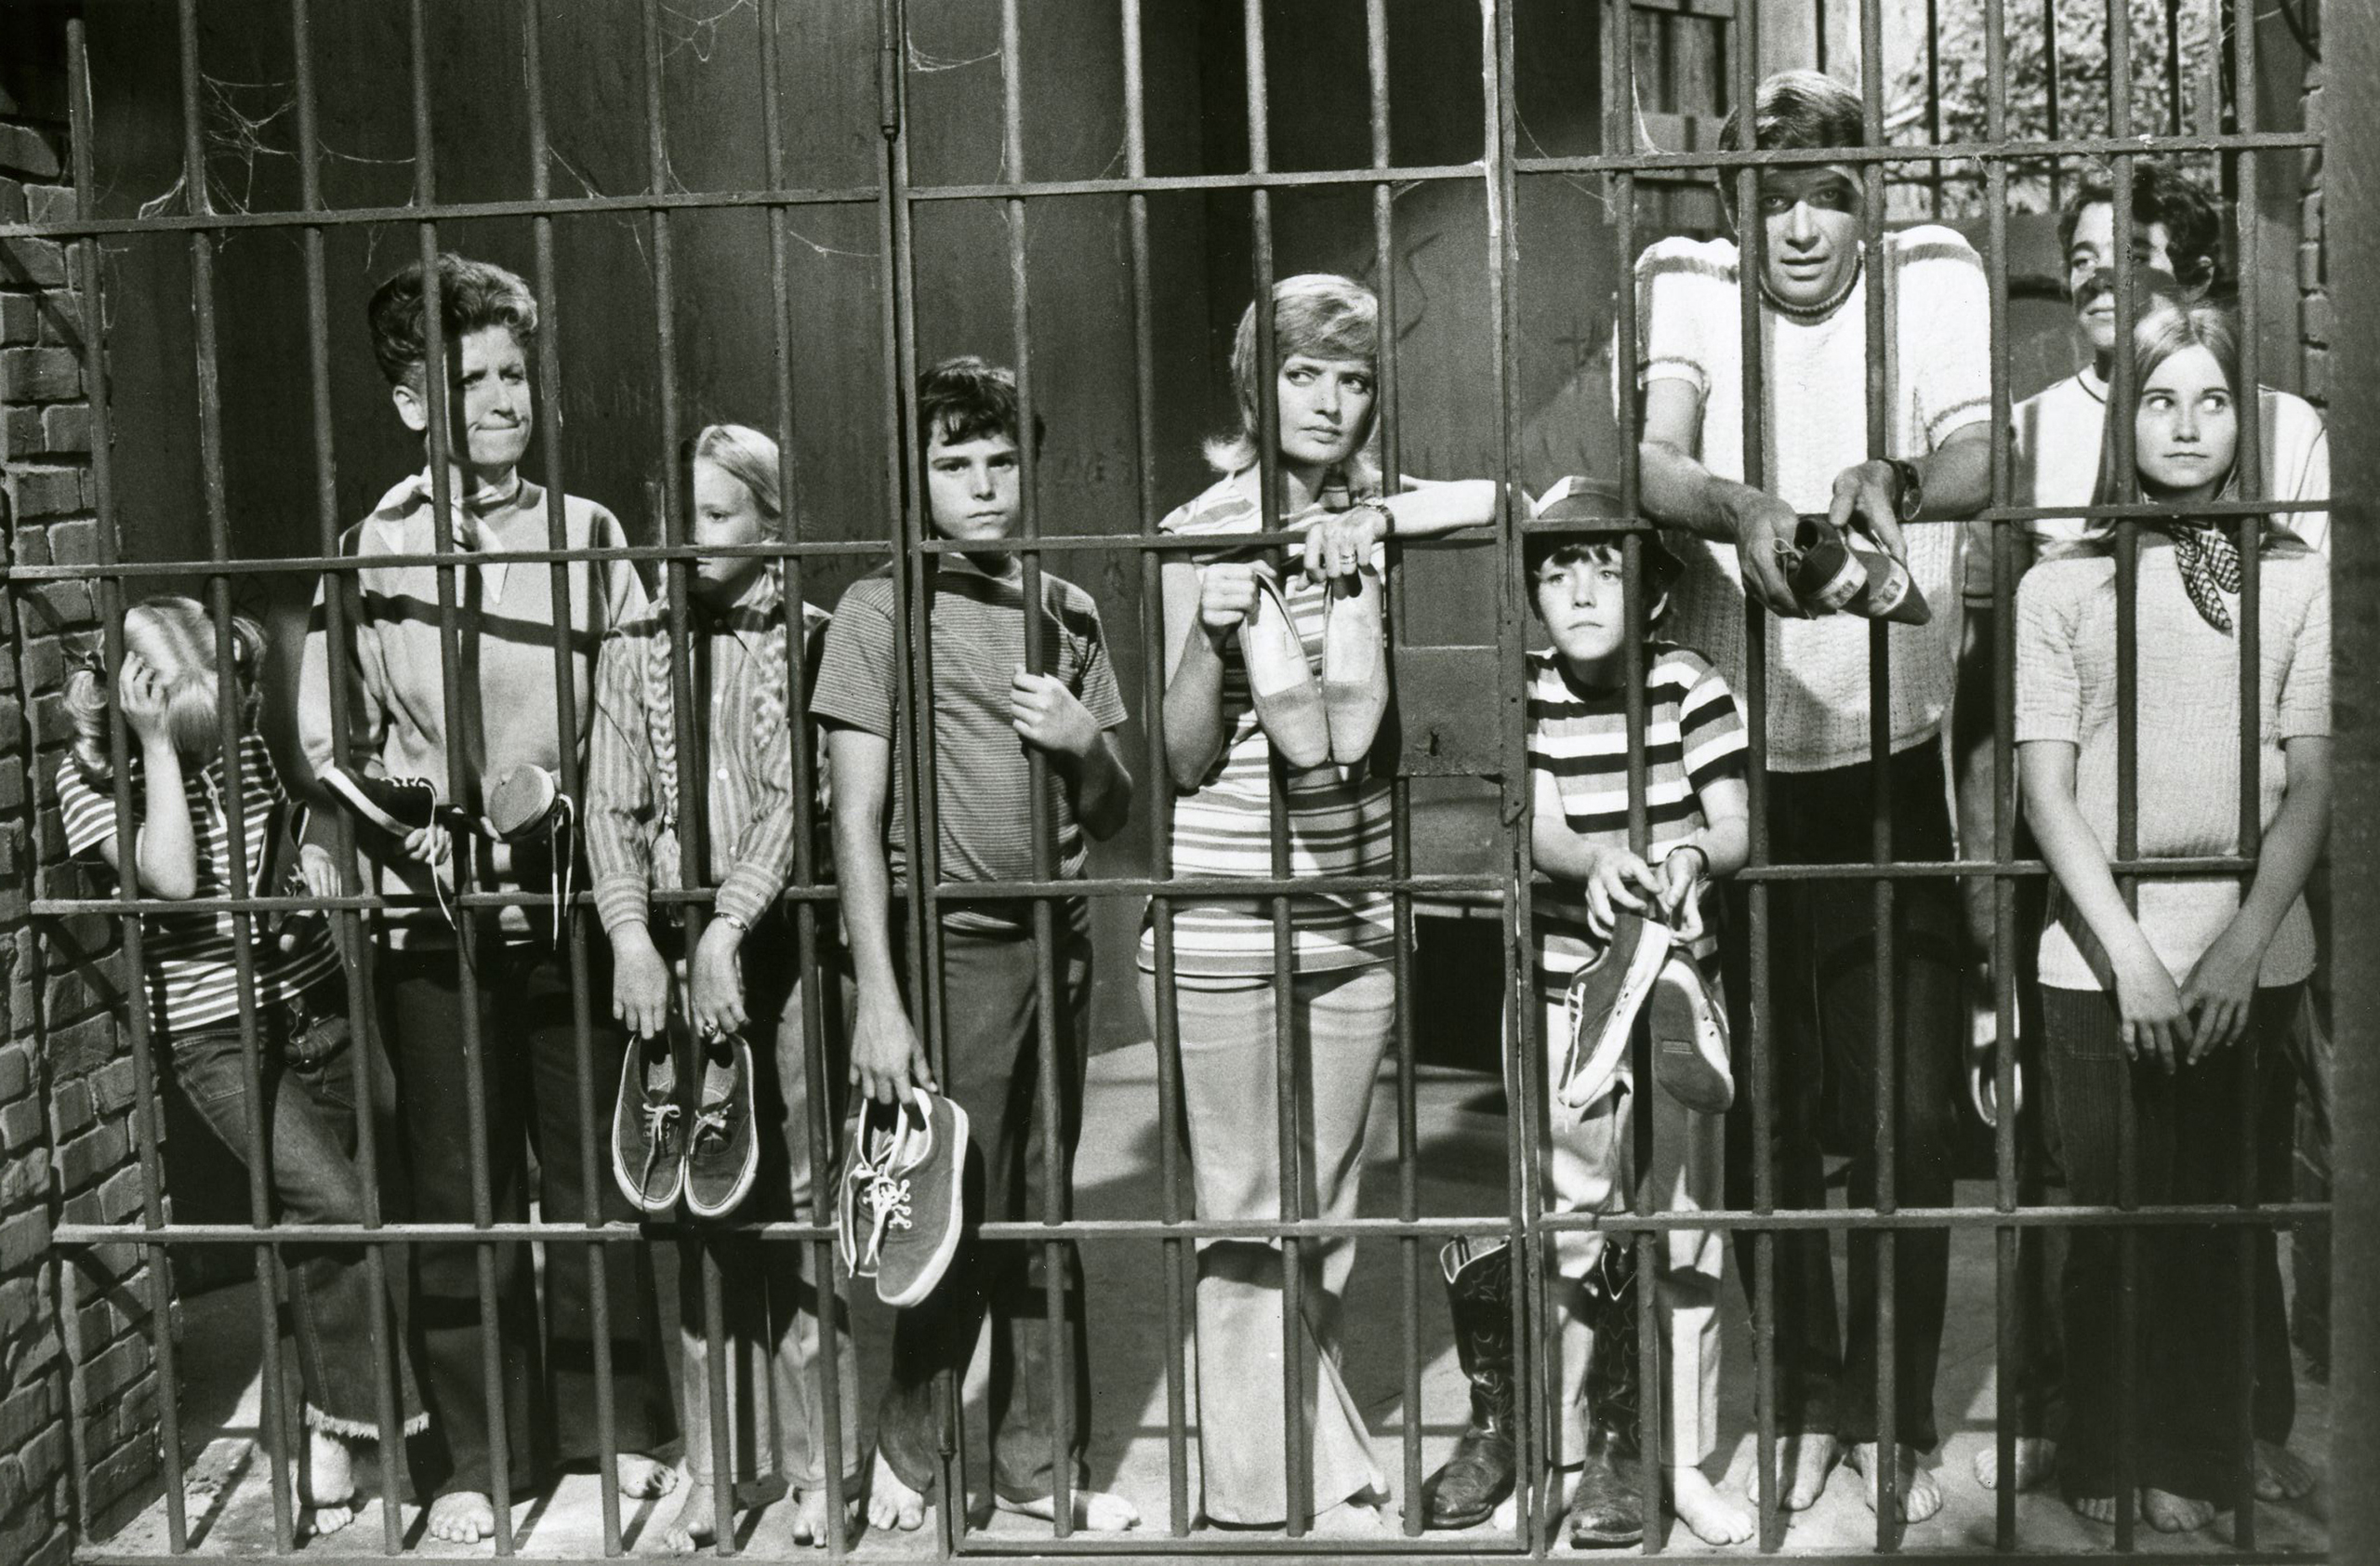 In the first of a three-part story filmed on location at the Grand Canyon the Brady Bunch were locked in a ghost town jail by a prospector who suspected that they were there to steal his gold, on Sept. 17, 1971.